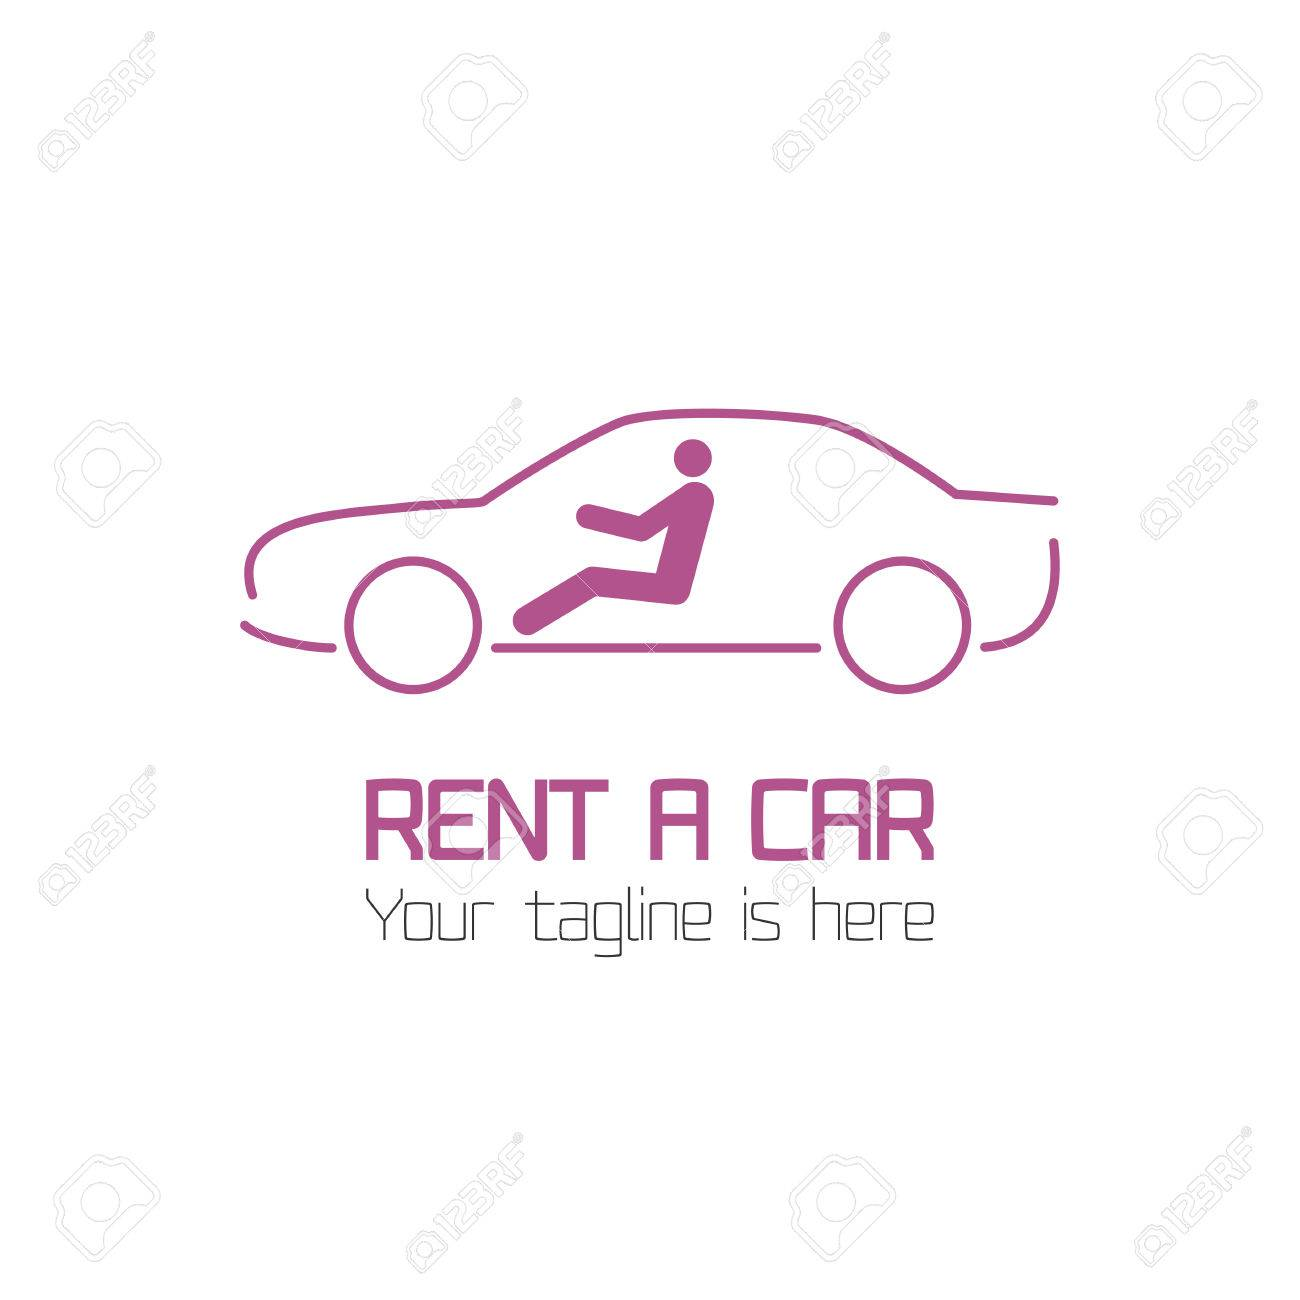 Vector Template Of Car Rental Company Logo Rent A Car Automotive Royalty Free Cliparts Vectors And Stock Illustration Image 54530408